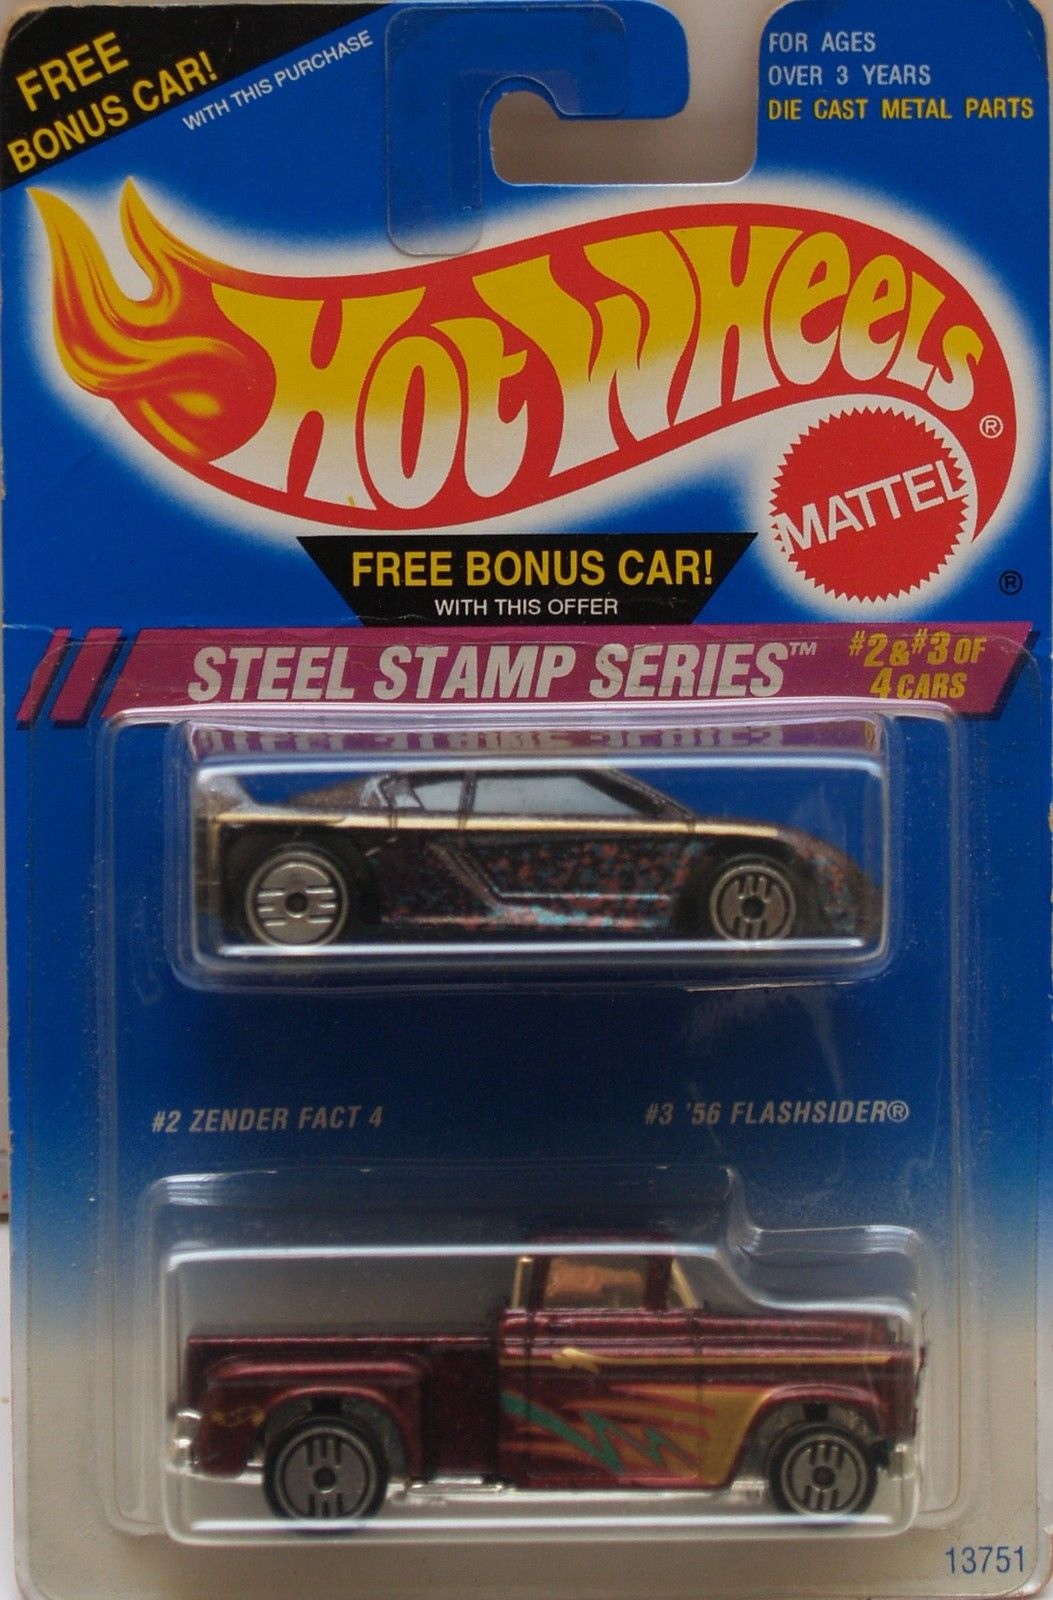 1994 HOT WHEELS - STEEL STAMP SERIES - CARS #2 & #3 - 2 CAR PACK